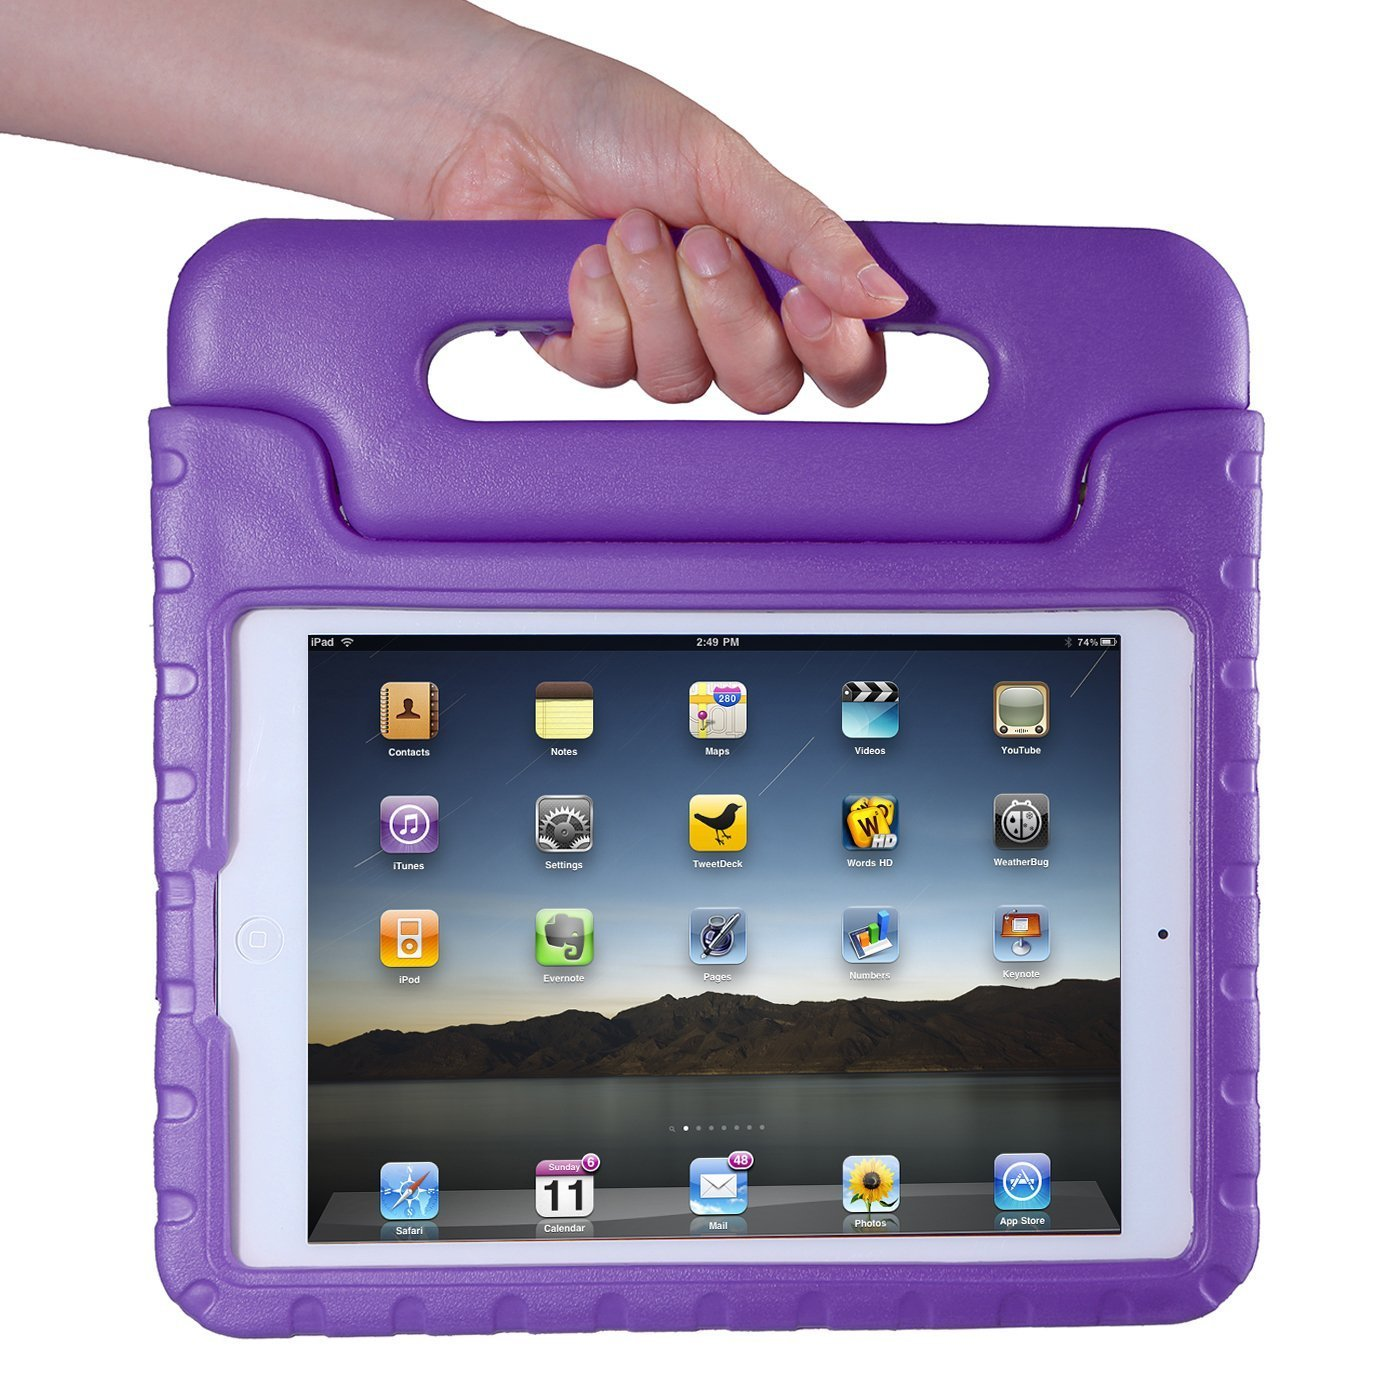 ipad cases for kids - hde shock proof